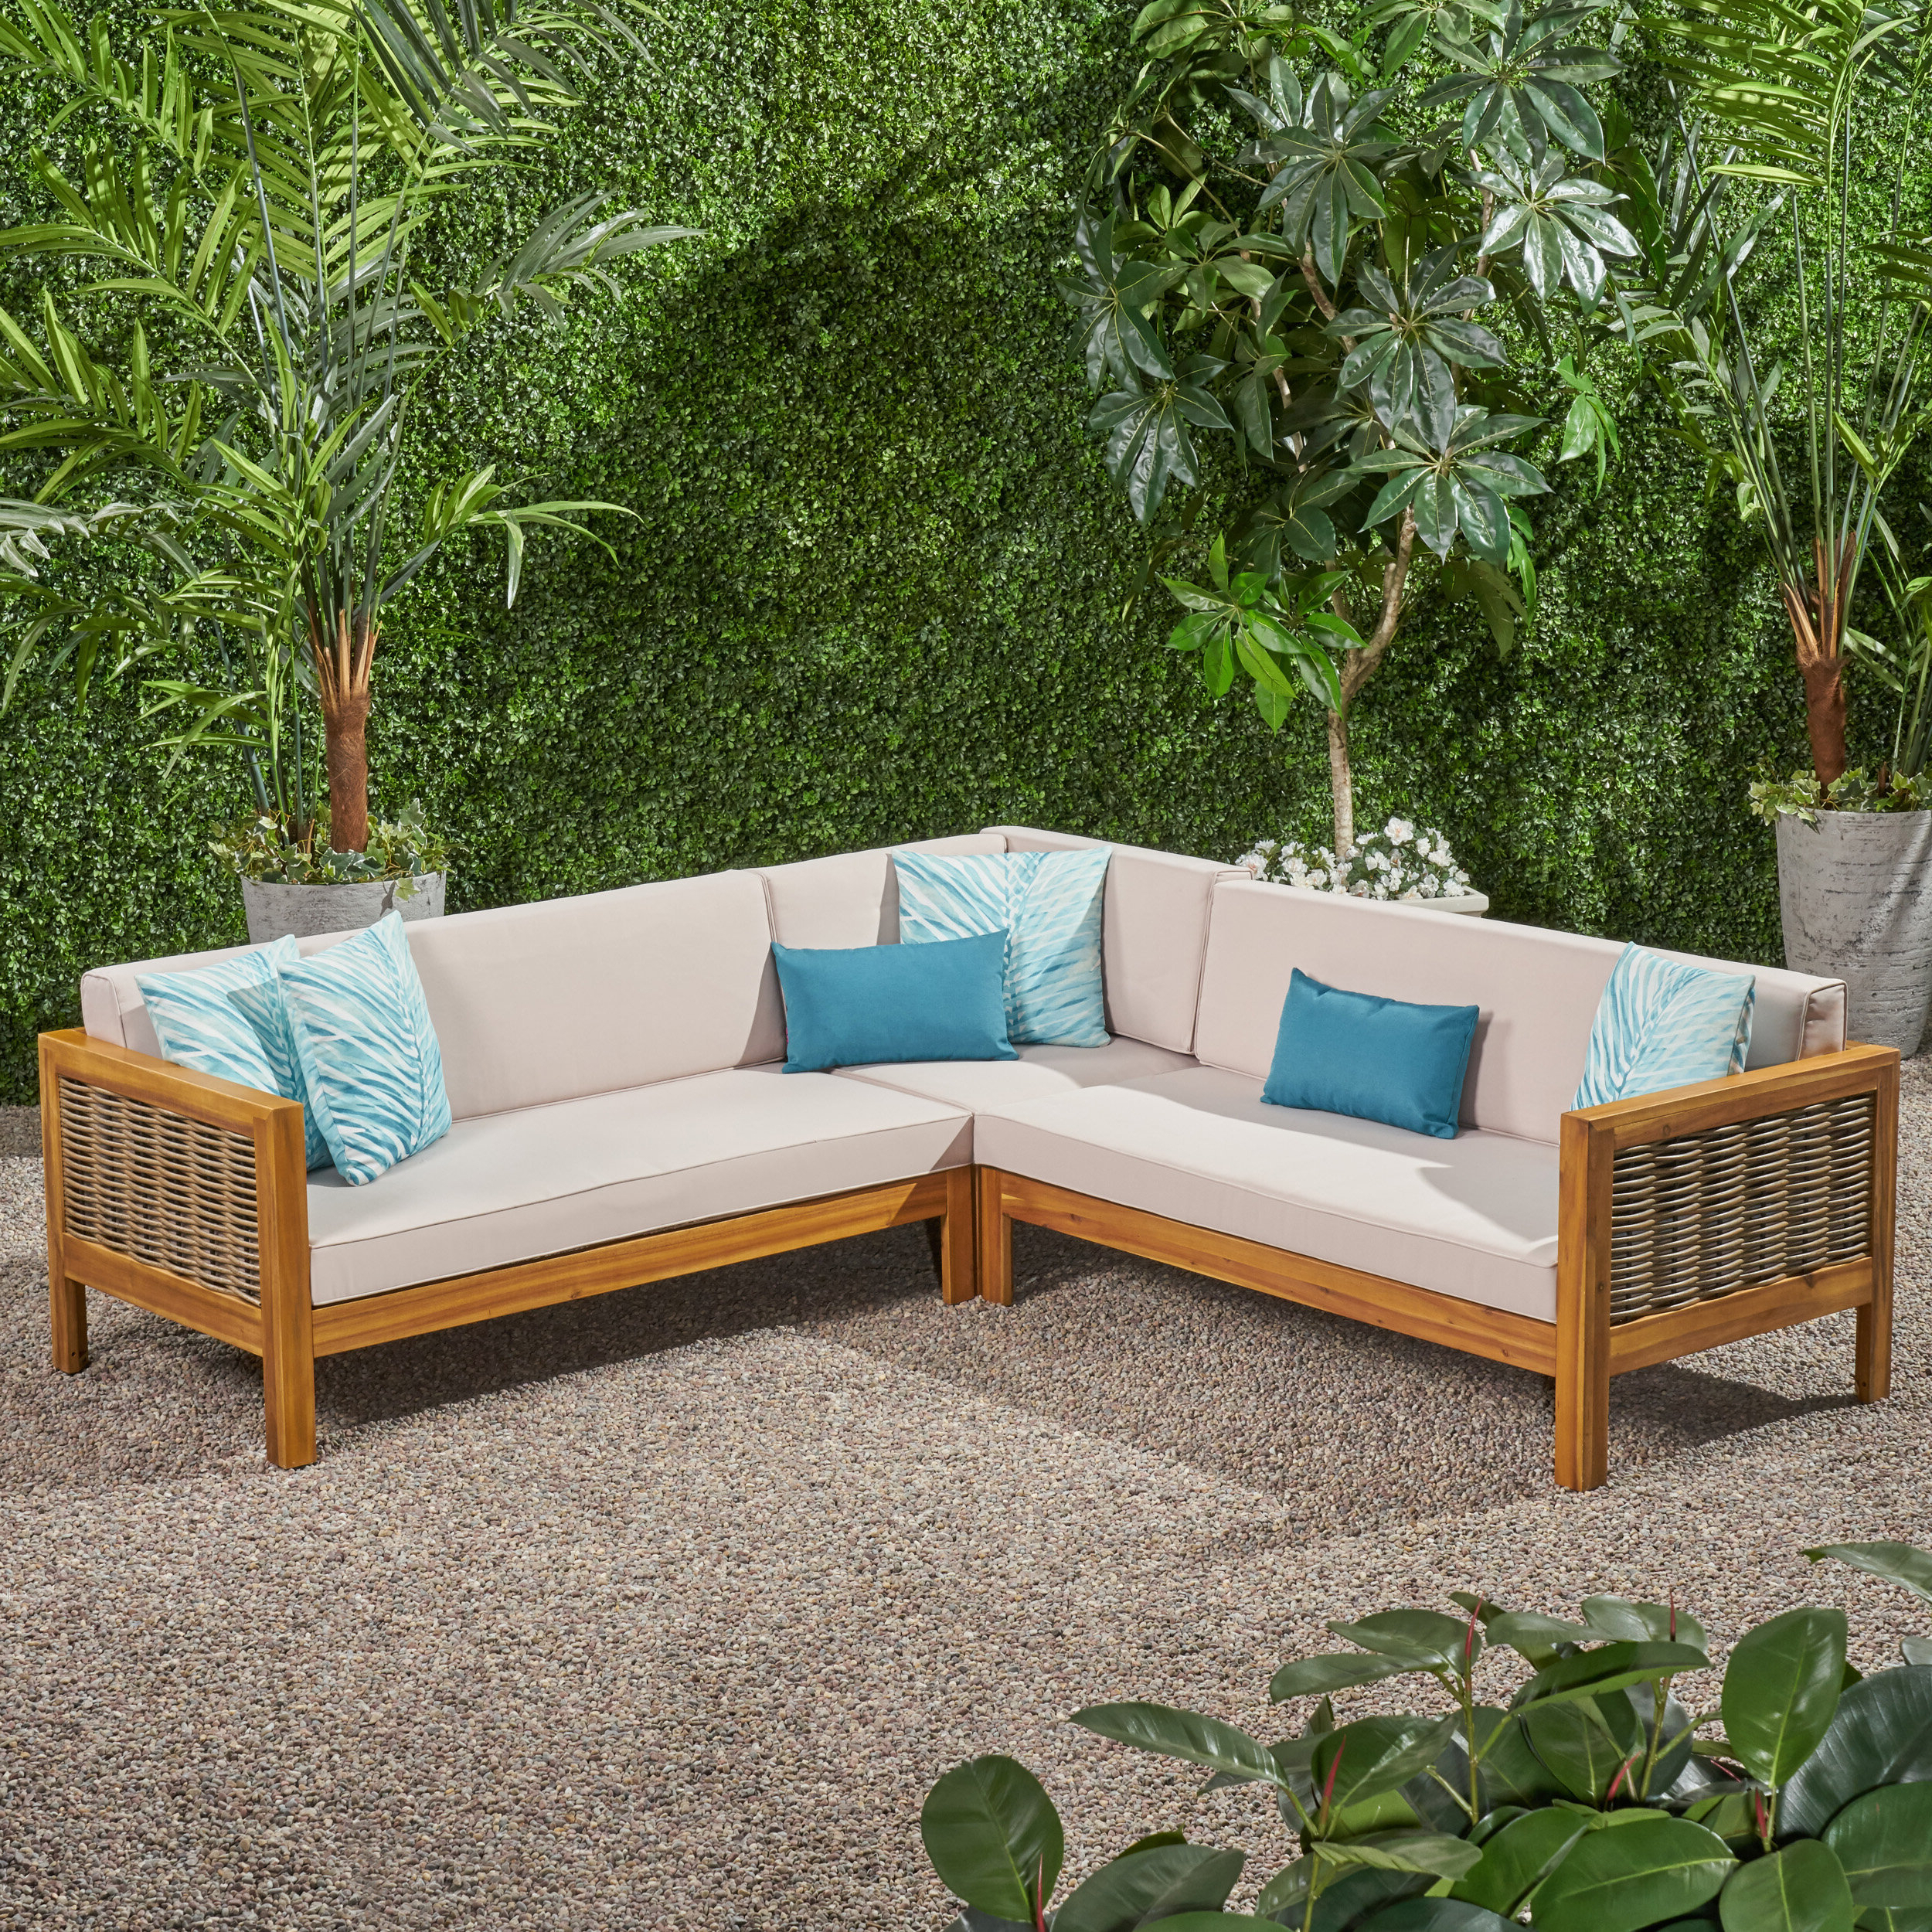 Famous Seaham Patio Sectionals With Cushions Within Kennison Patio Sectional With Cushions (View 3 of 20)